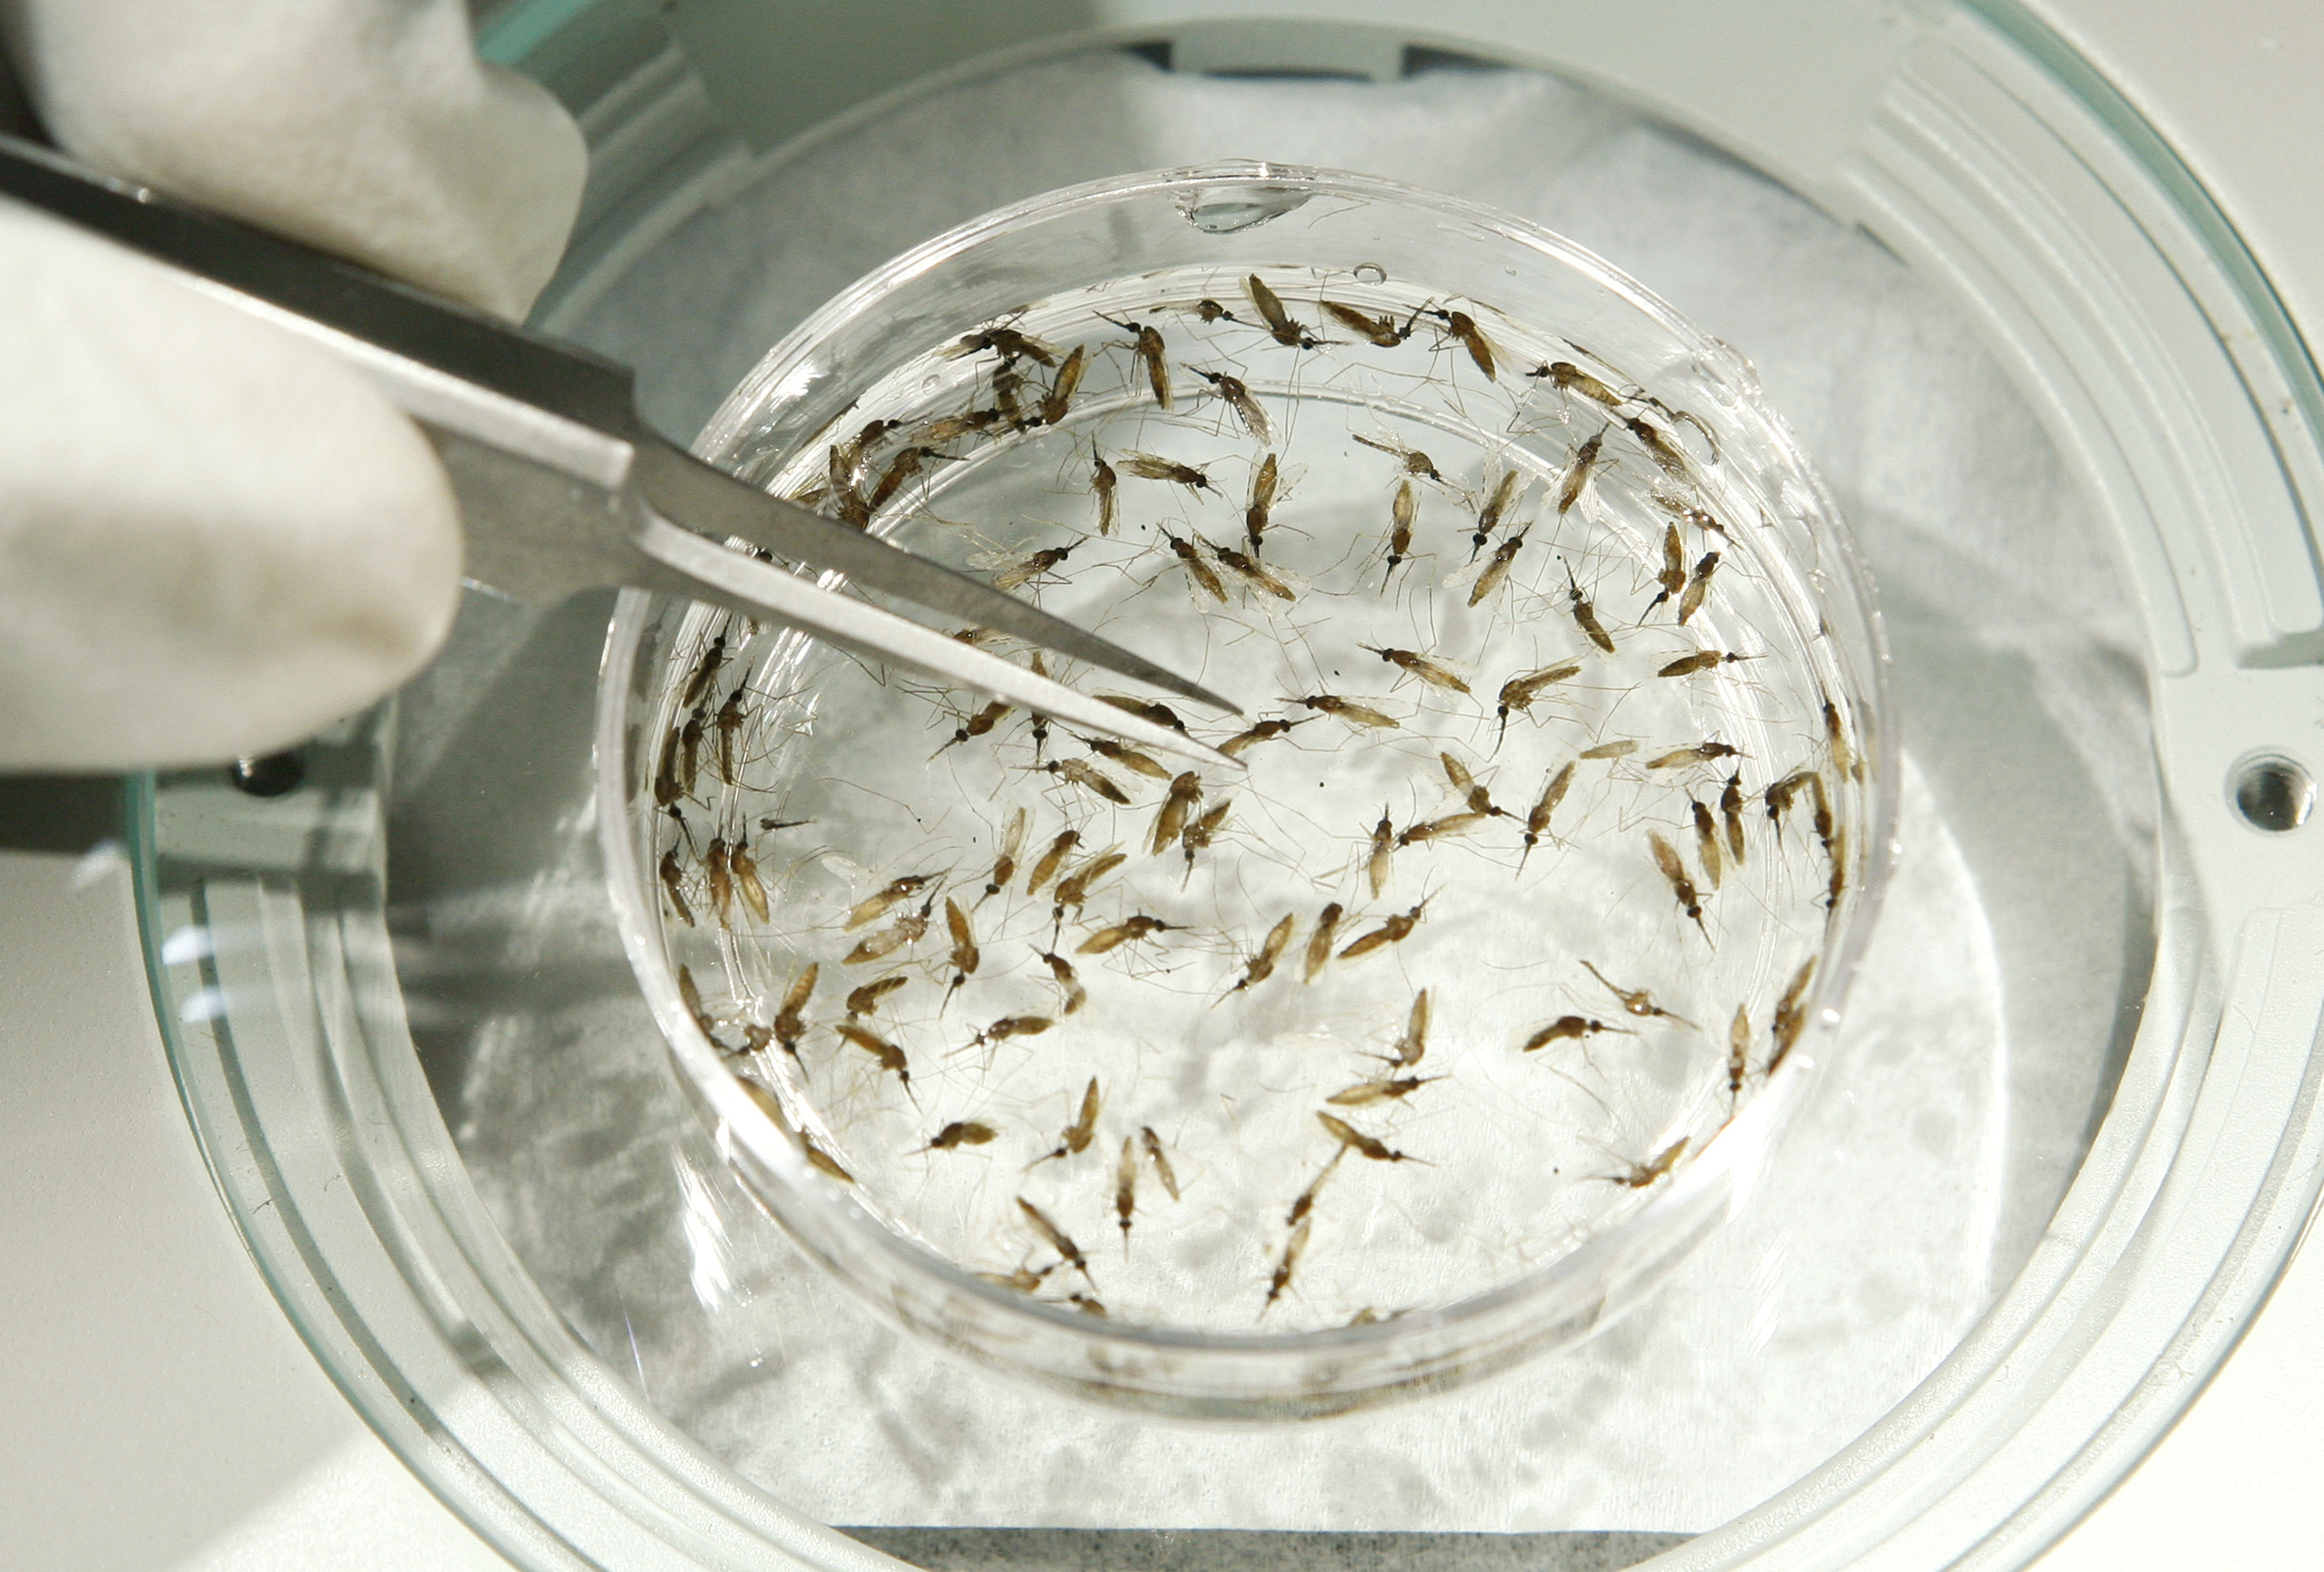 Mosquitoes in a petri dish, as the WHO approves a malaria vaccine.